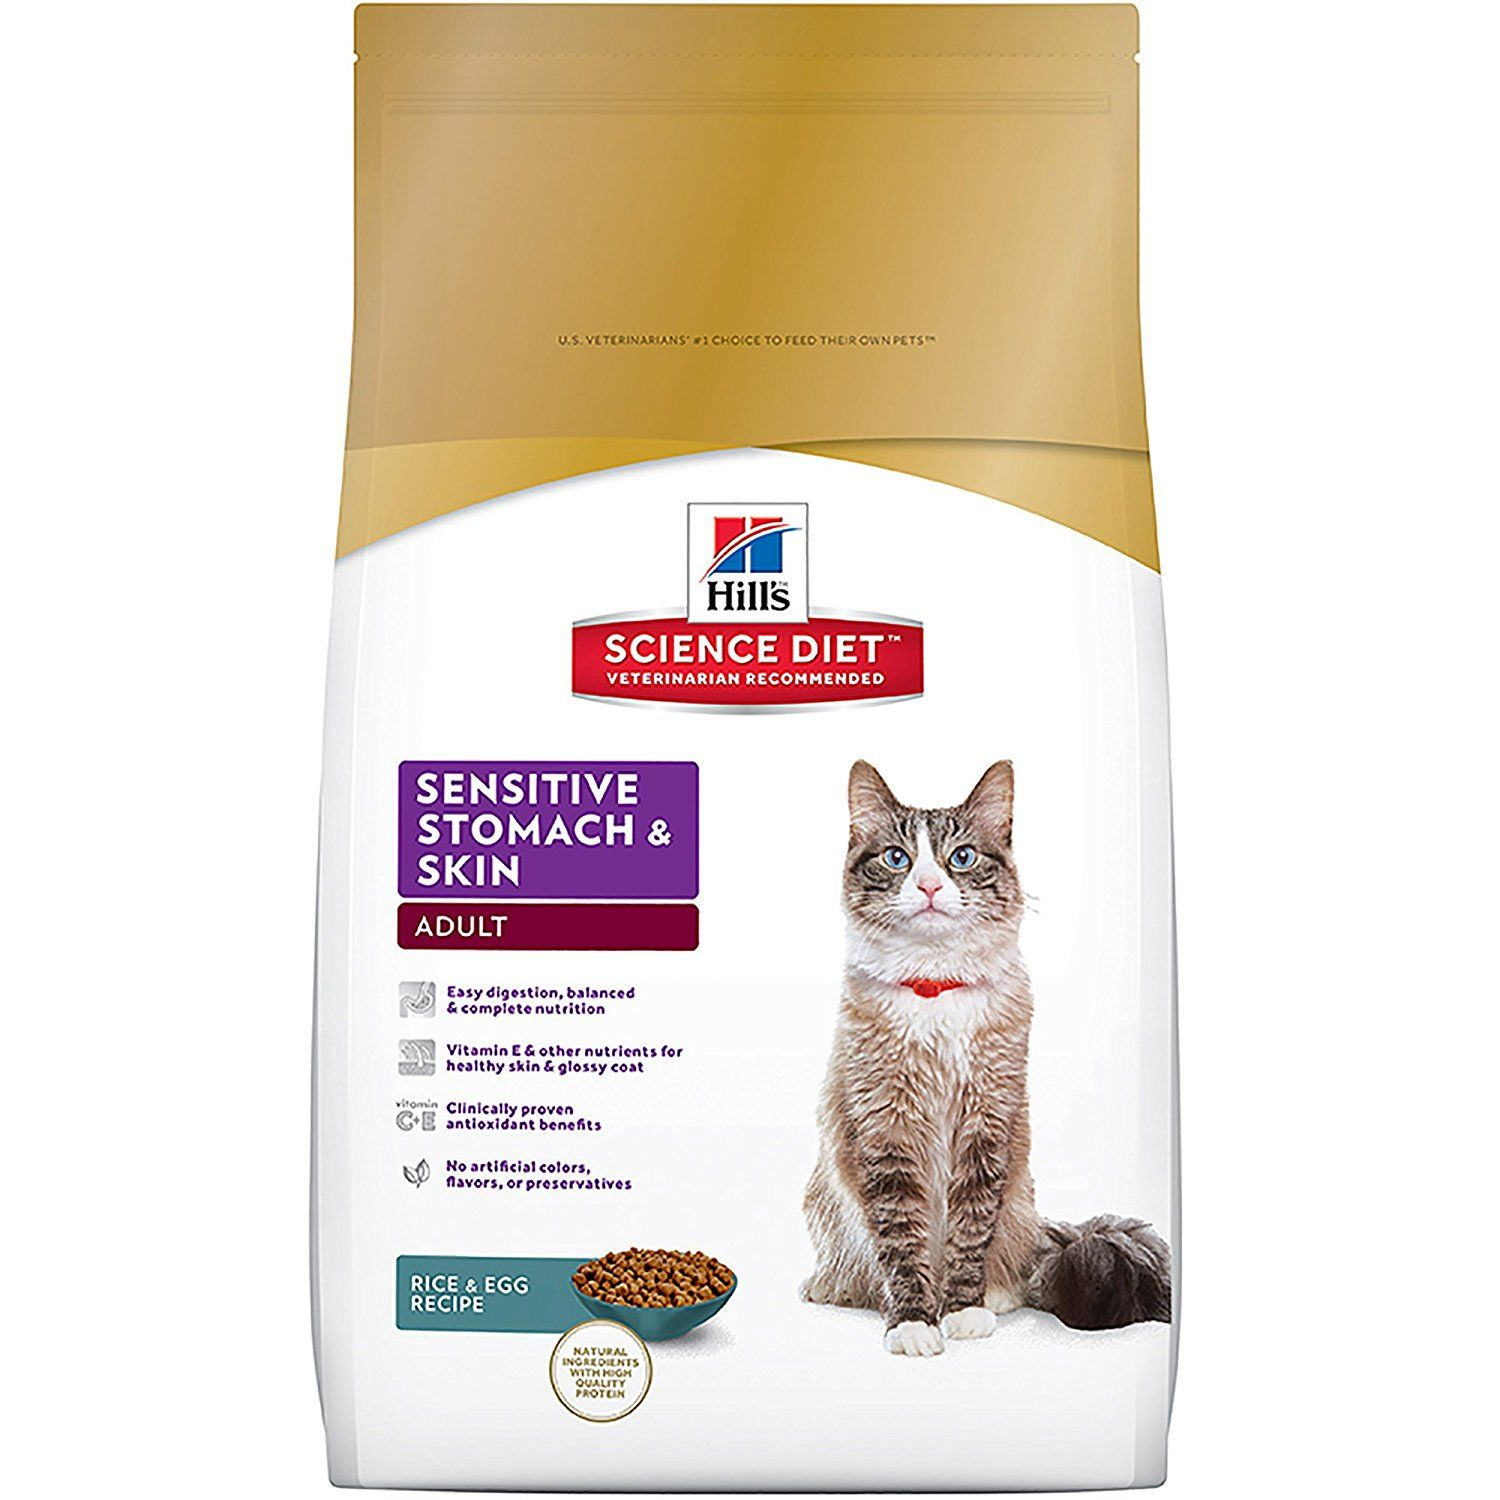 Hill S Science Diet Sensitive Stomach And Skin Dry Cat Food Wow I Love This Check It Out Now Best Cat Foo Dry Cat Food Hills Science Diet Science Diet